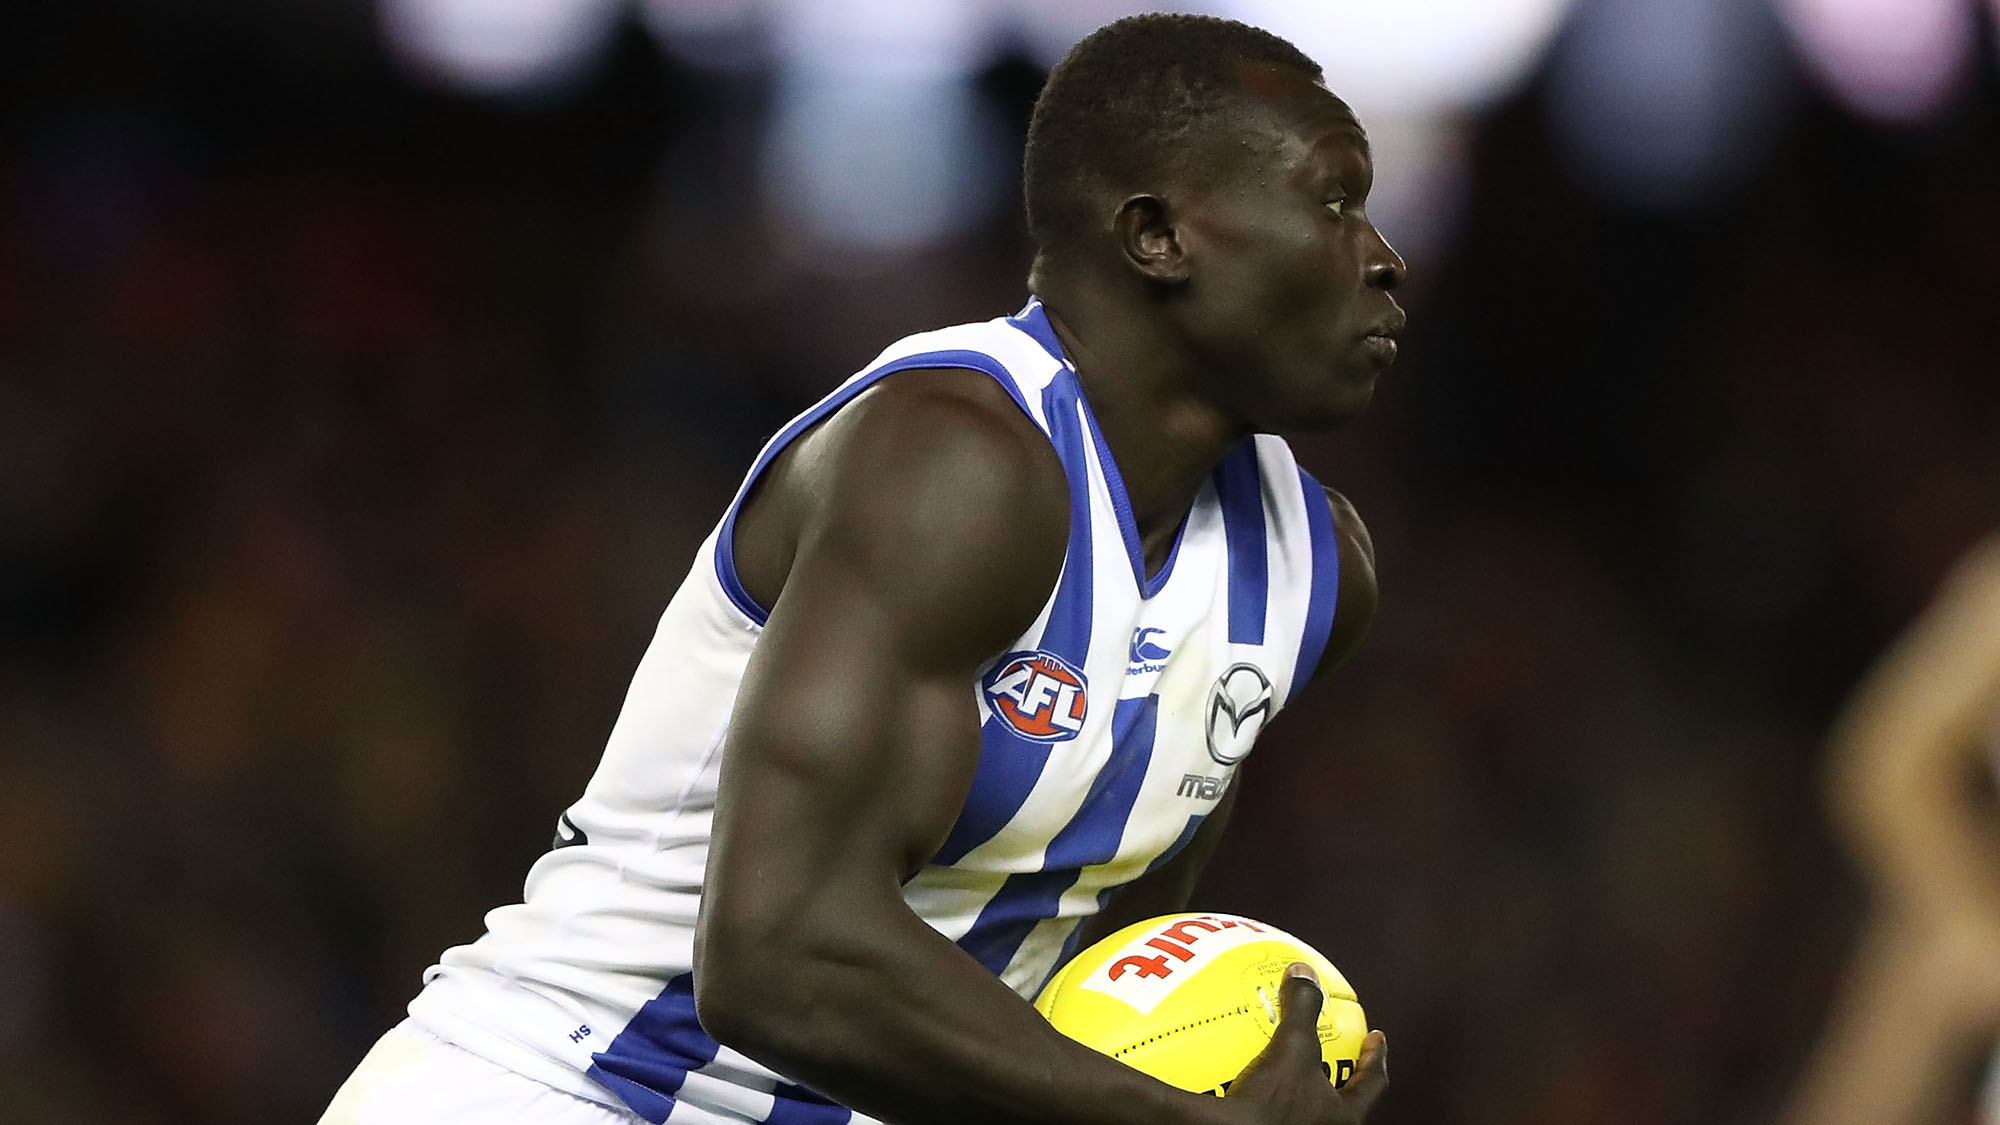 North Melbourne S Majak Daw Reportedly Hospitalised After